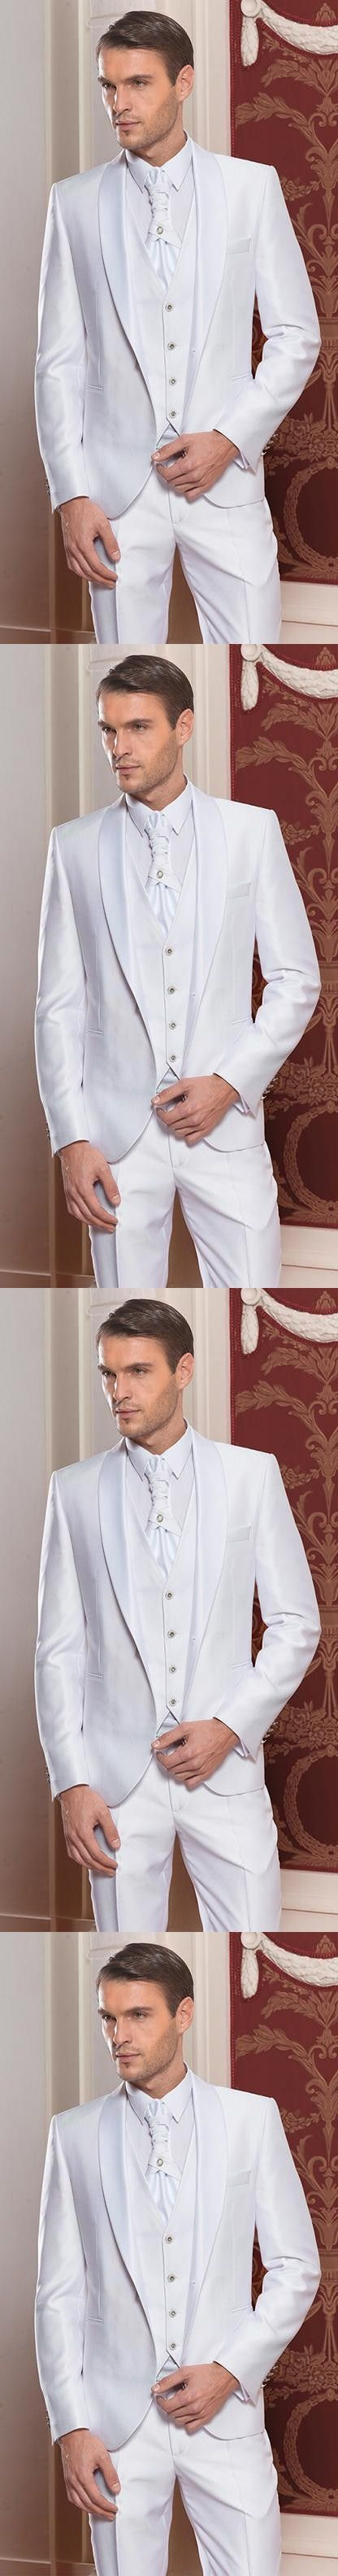 2017 New Arrival One Button Groom Tuxedos Shawl Satin Lapel Men's Suit White Groomsman Wedding/Prom Suits(Jacket+Pants+Vest)